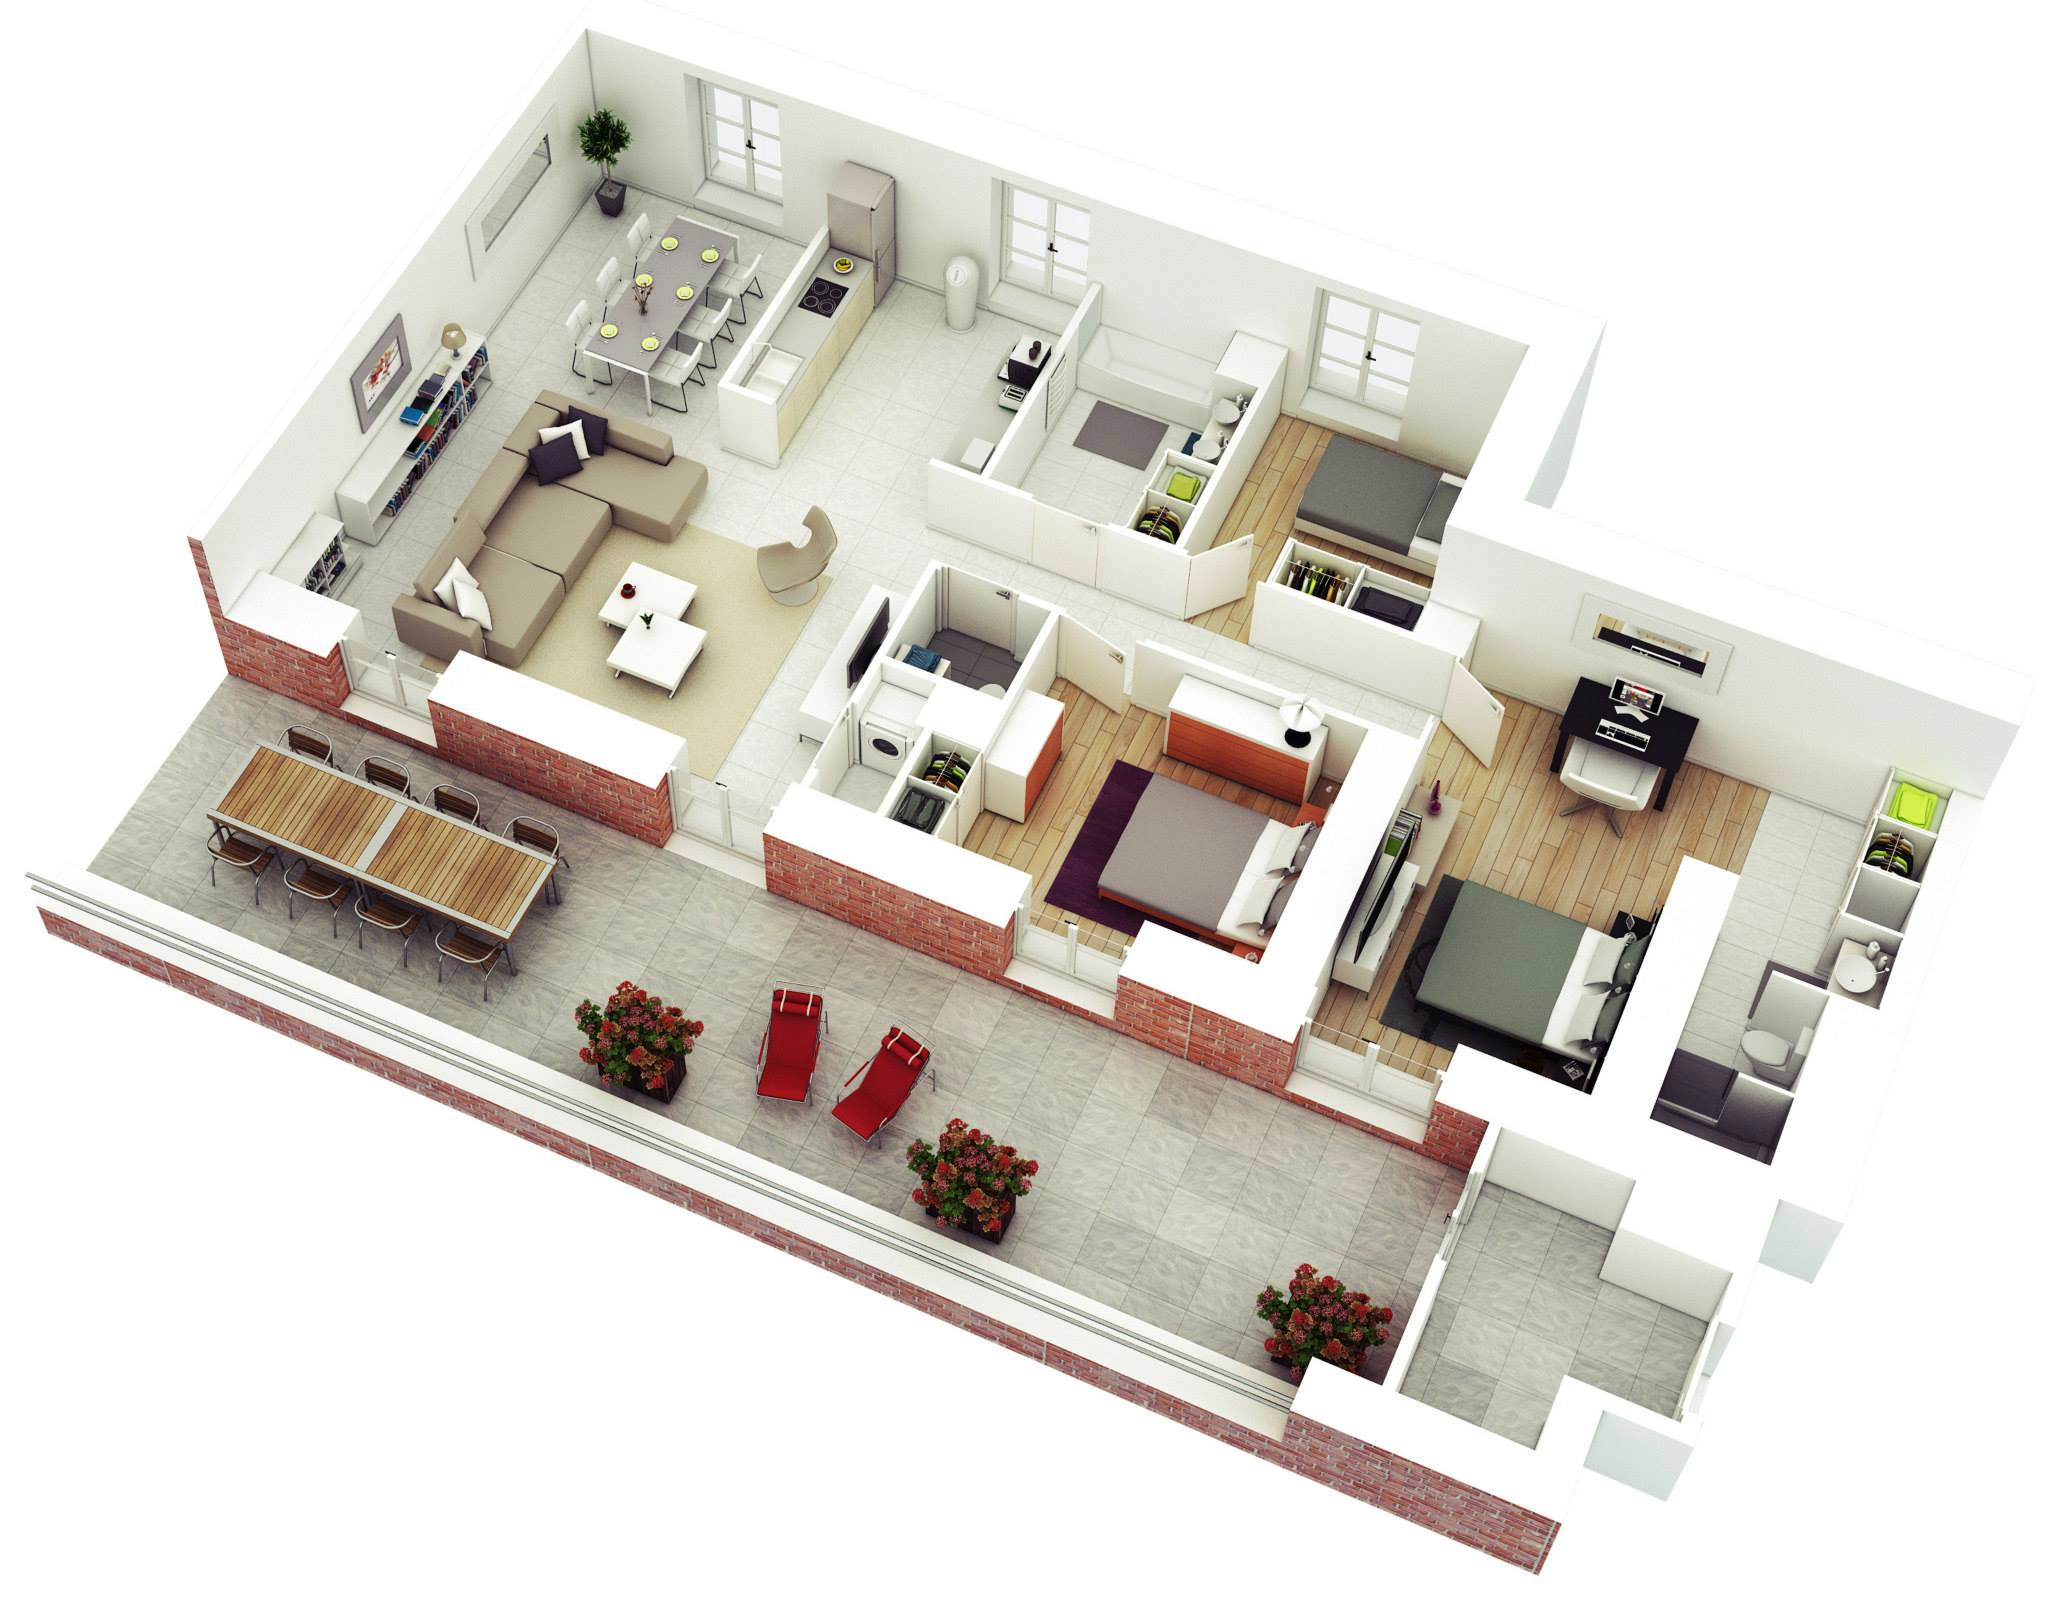 25 more 3 bedroom 3d floor plans - 3d House Floor Plans Free